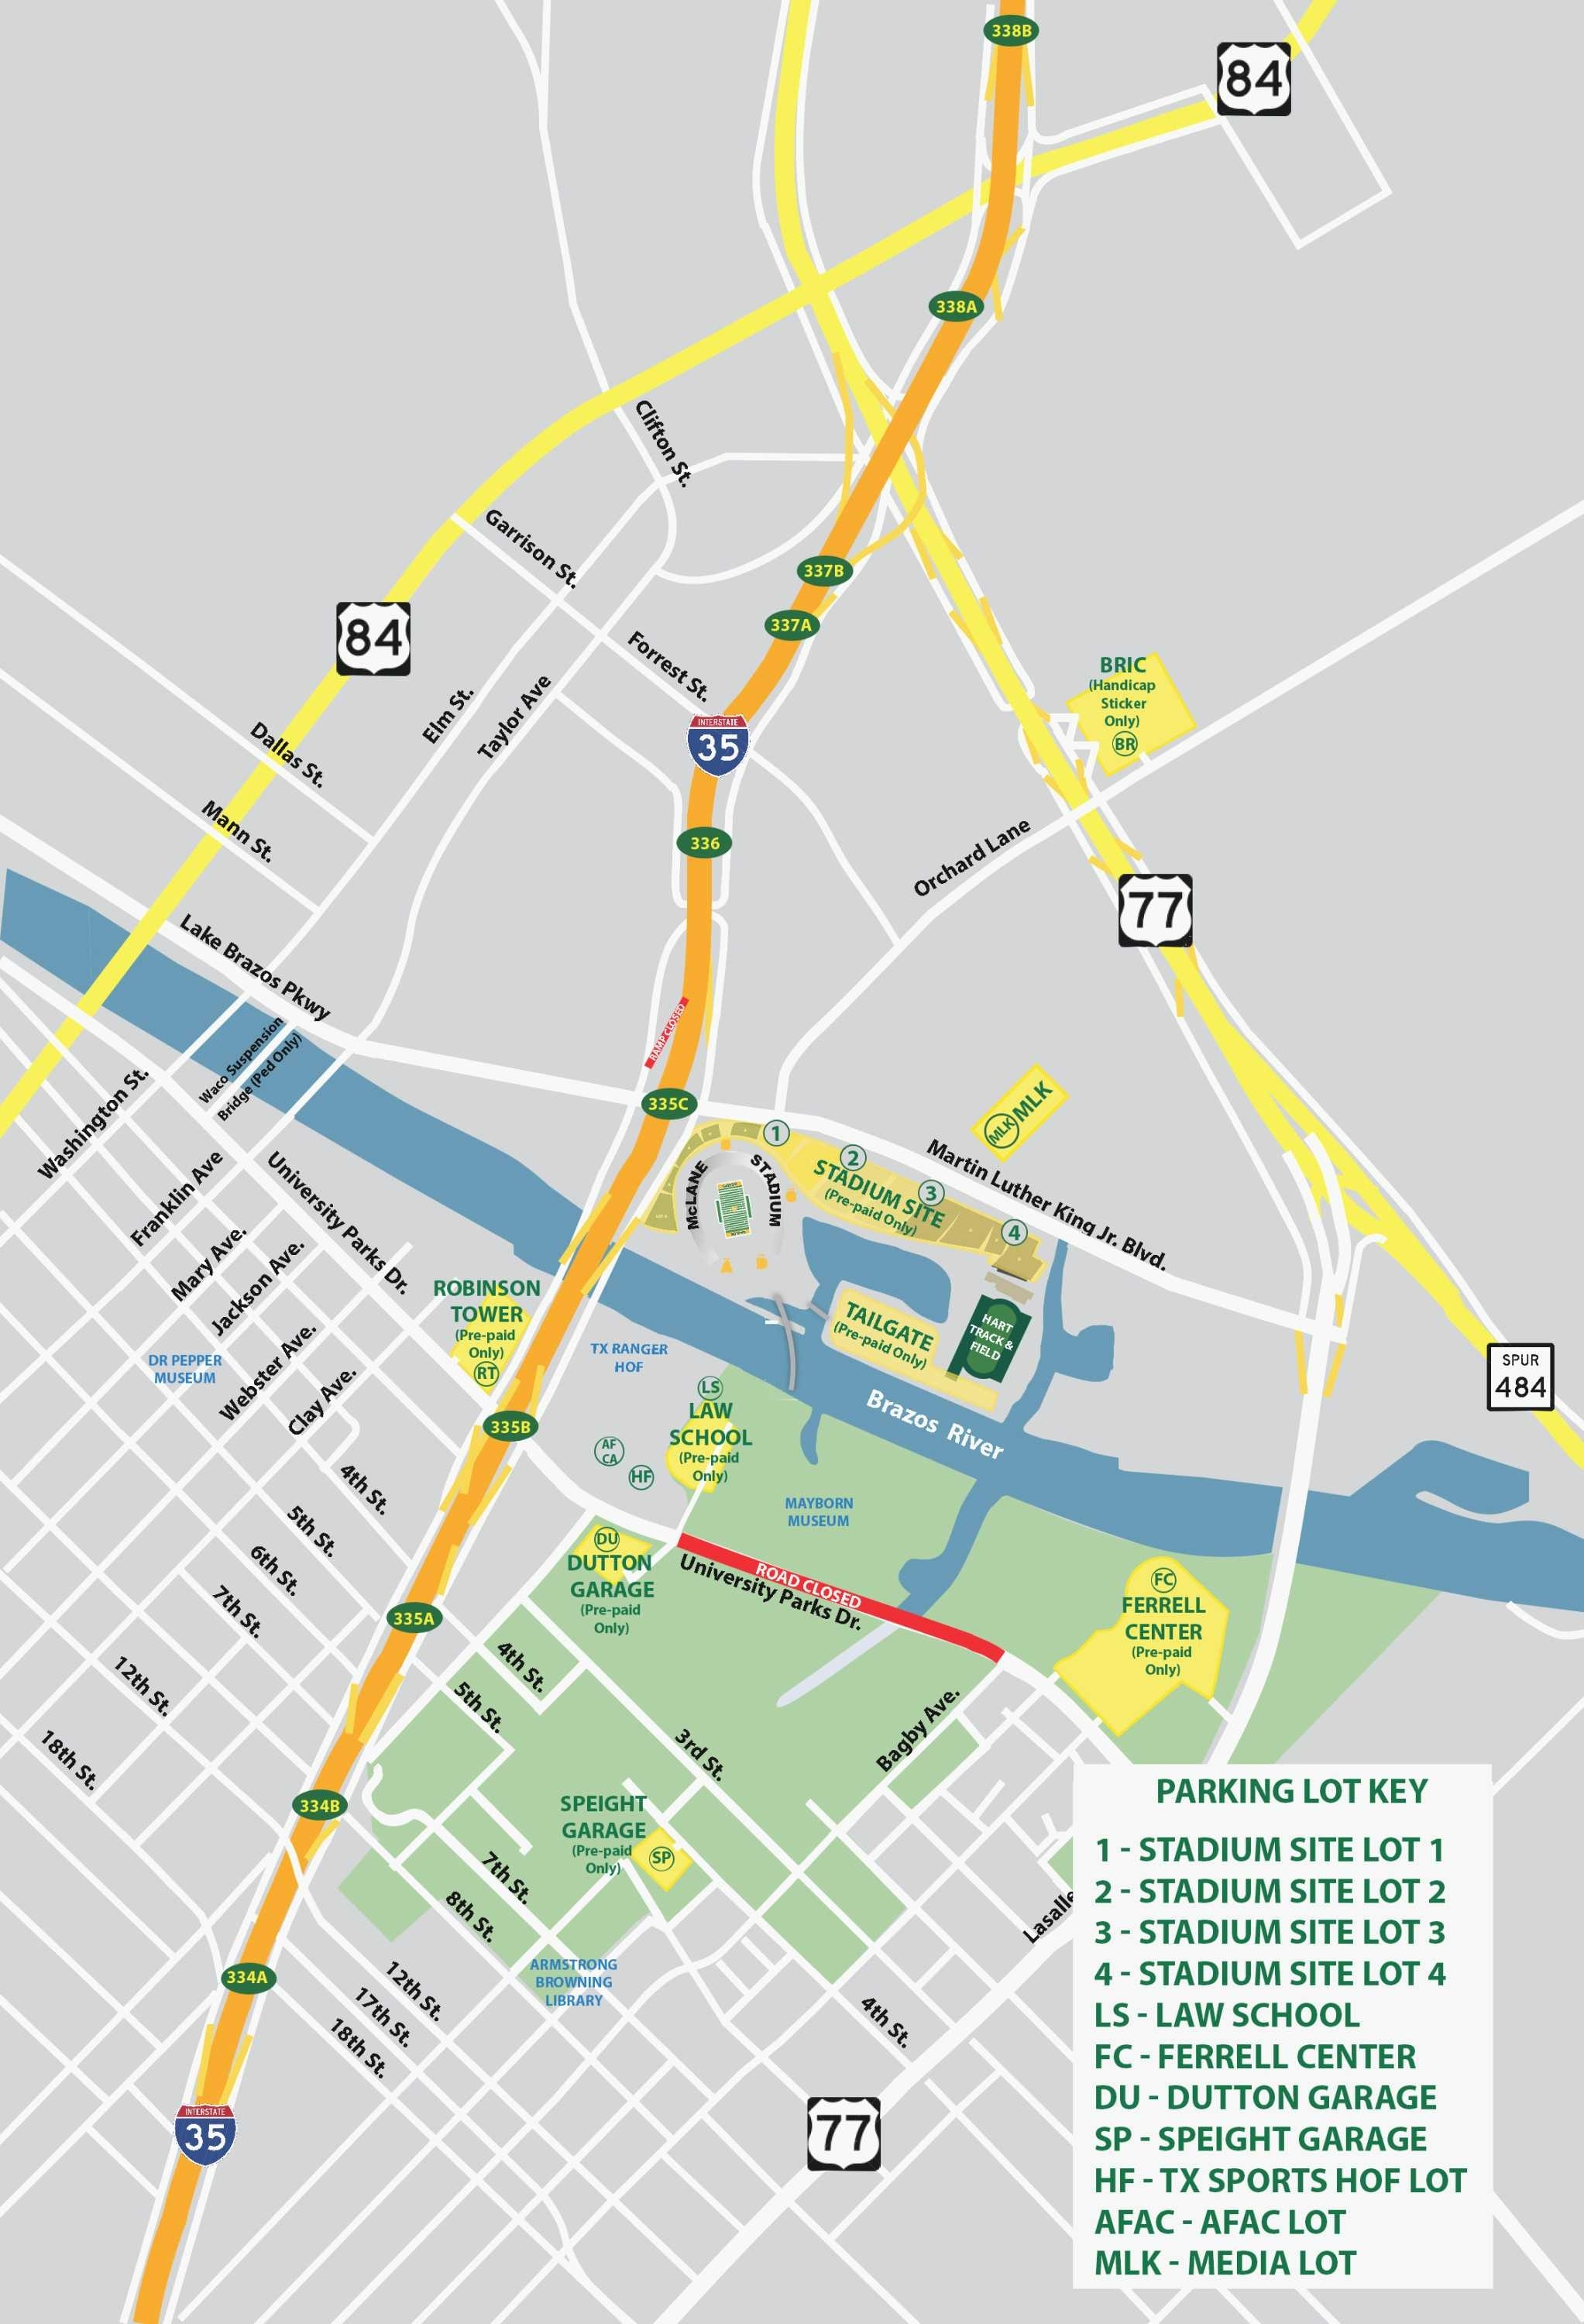 Foroffice | Alternate Side Parking Map Nyc inside Nyc Parking Map Alternate Side